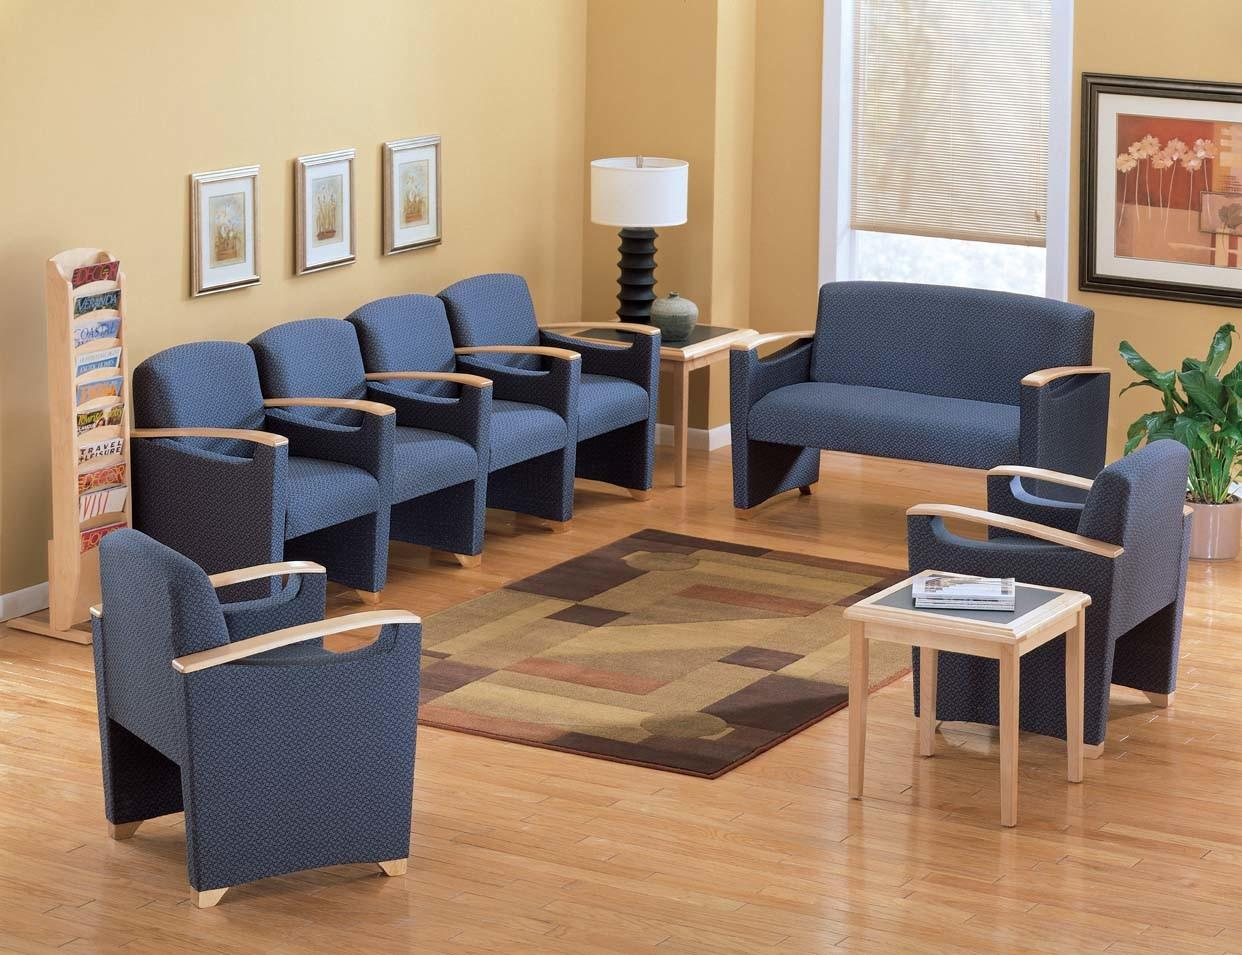 Reception Waiting Room Furniture West Palm Beach